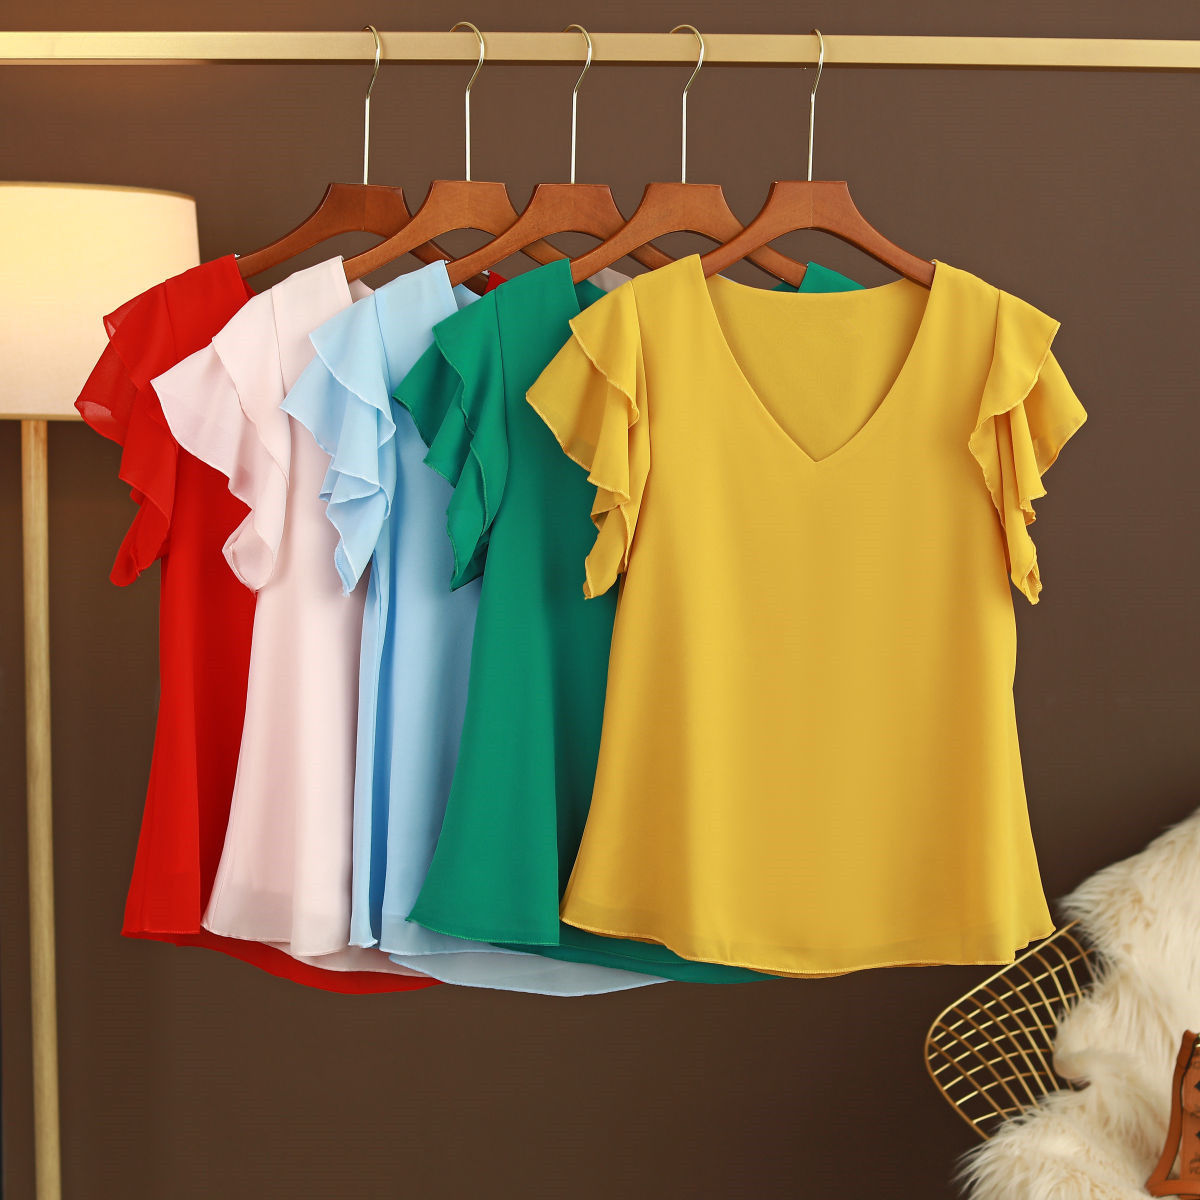 2021 New Fashion Women's blouse Tops Summer Short sleeve Chiffon shirt Solid V-neck Casual blouse Plus Size 5XL Loose Female Top 6